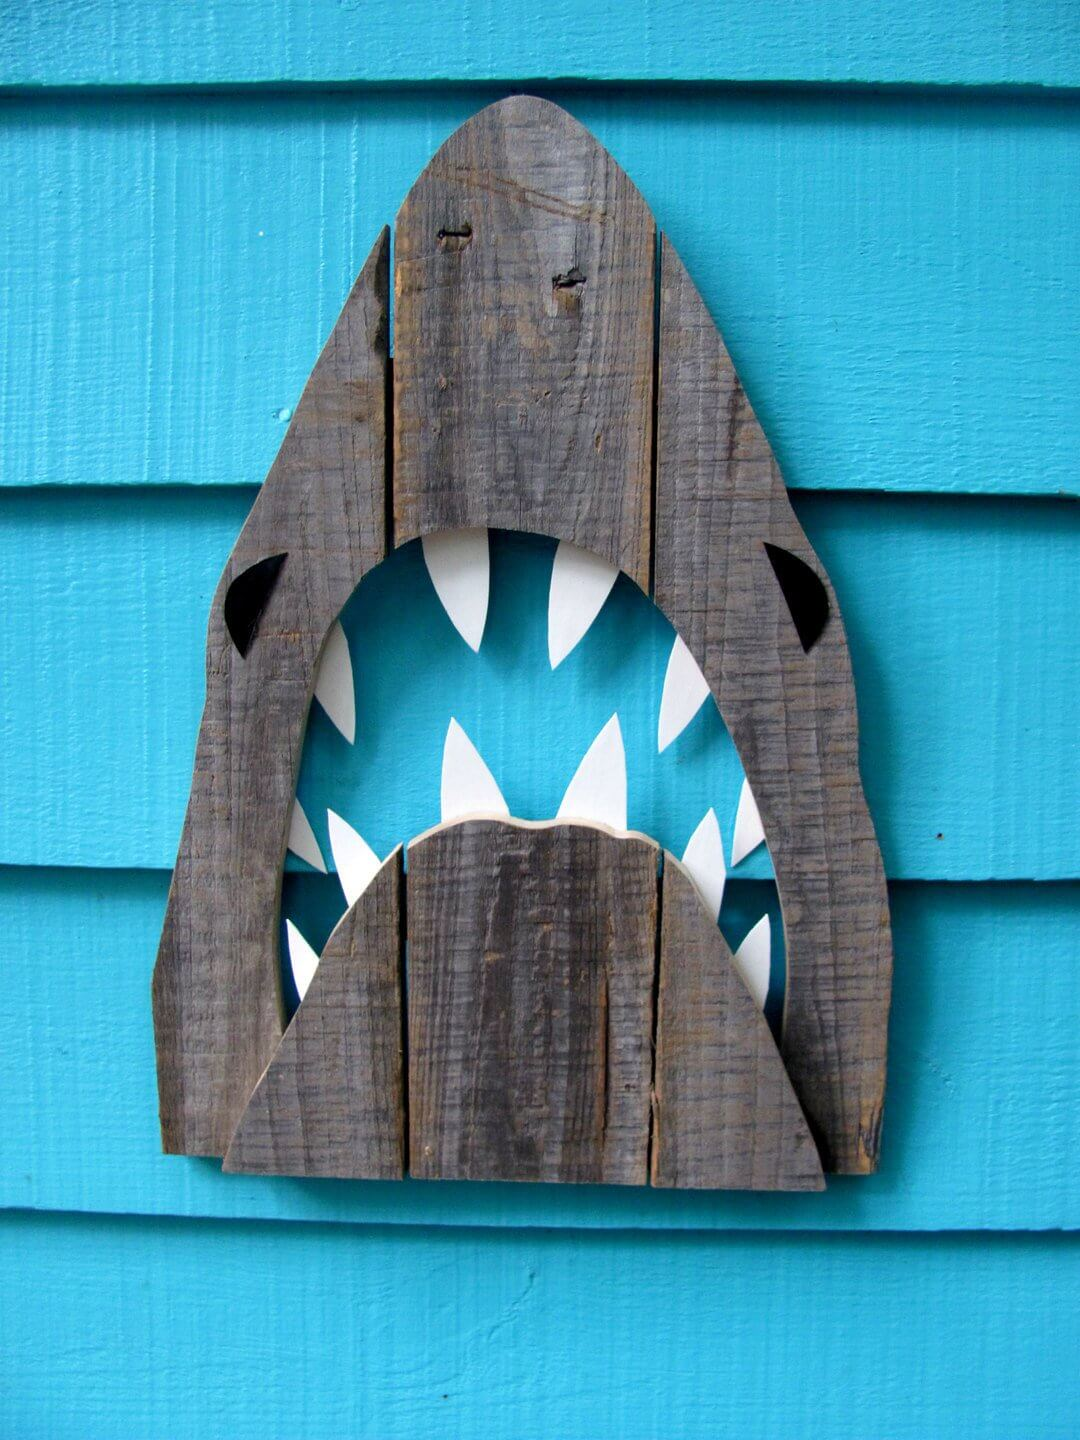 Wooden Pallet Shark's Head Cutout